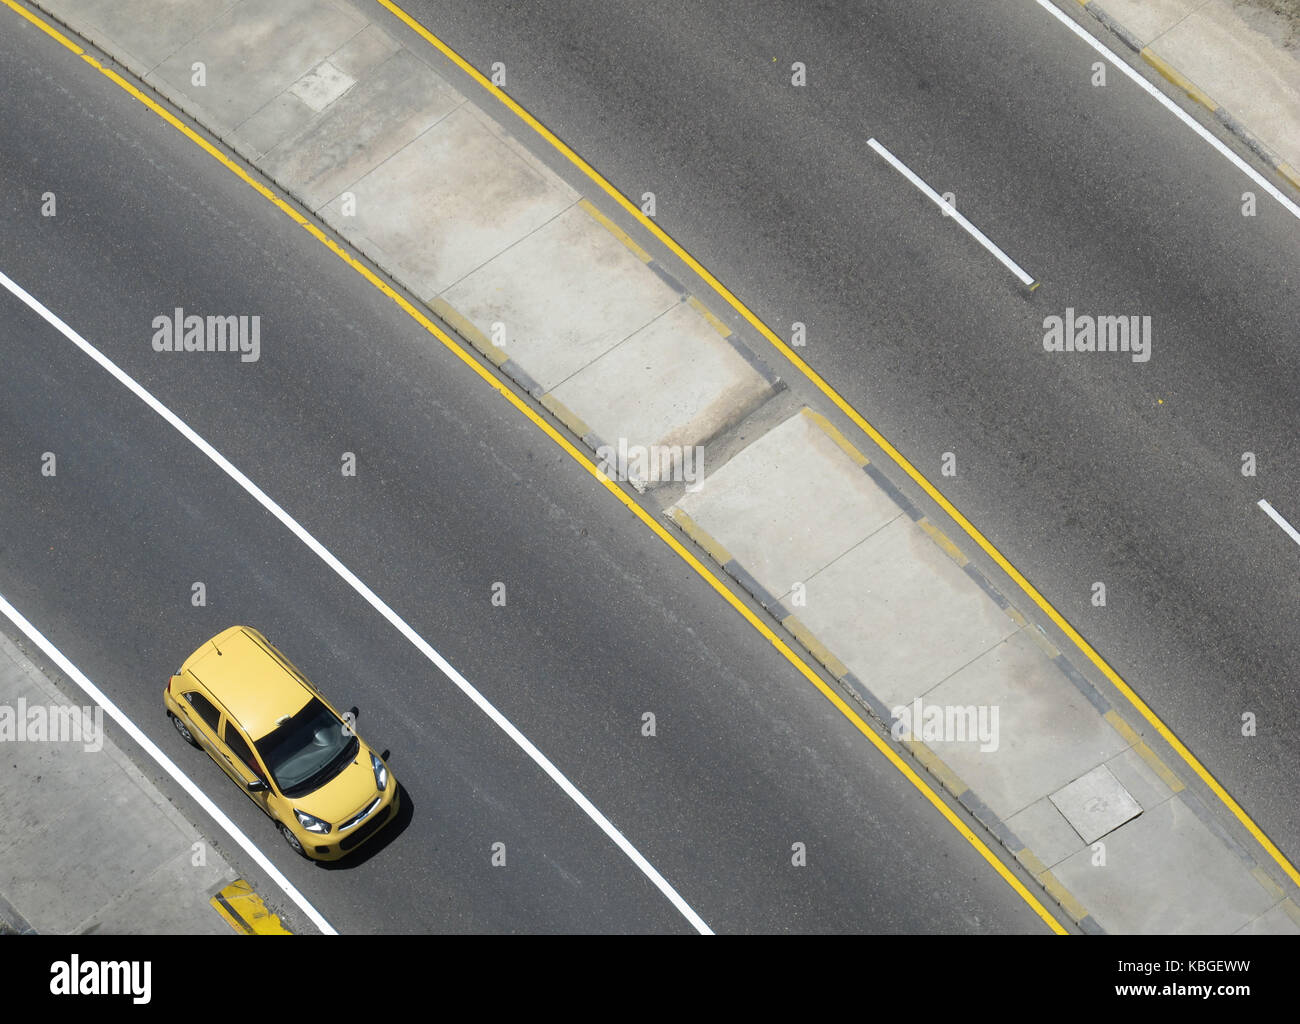 Aerial view of an empty road with a yellow taxi - Stock Image